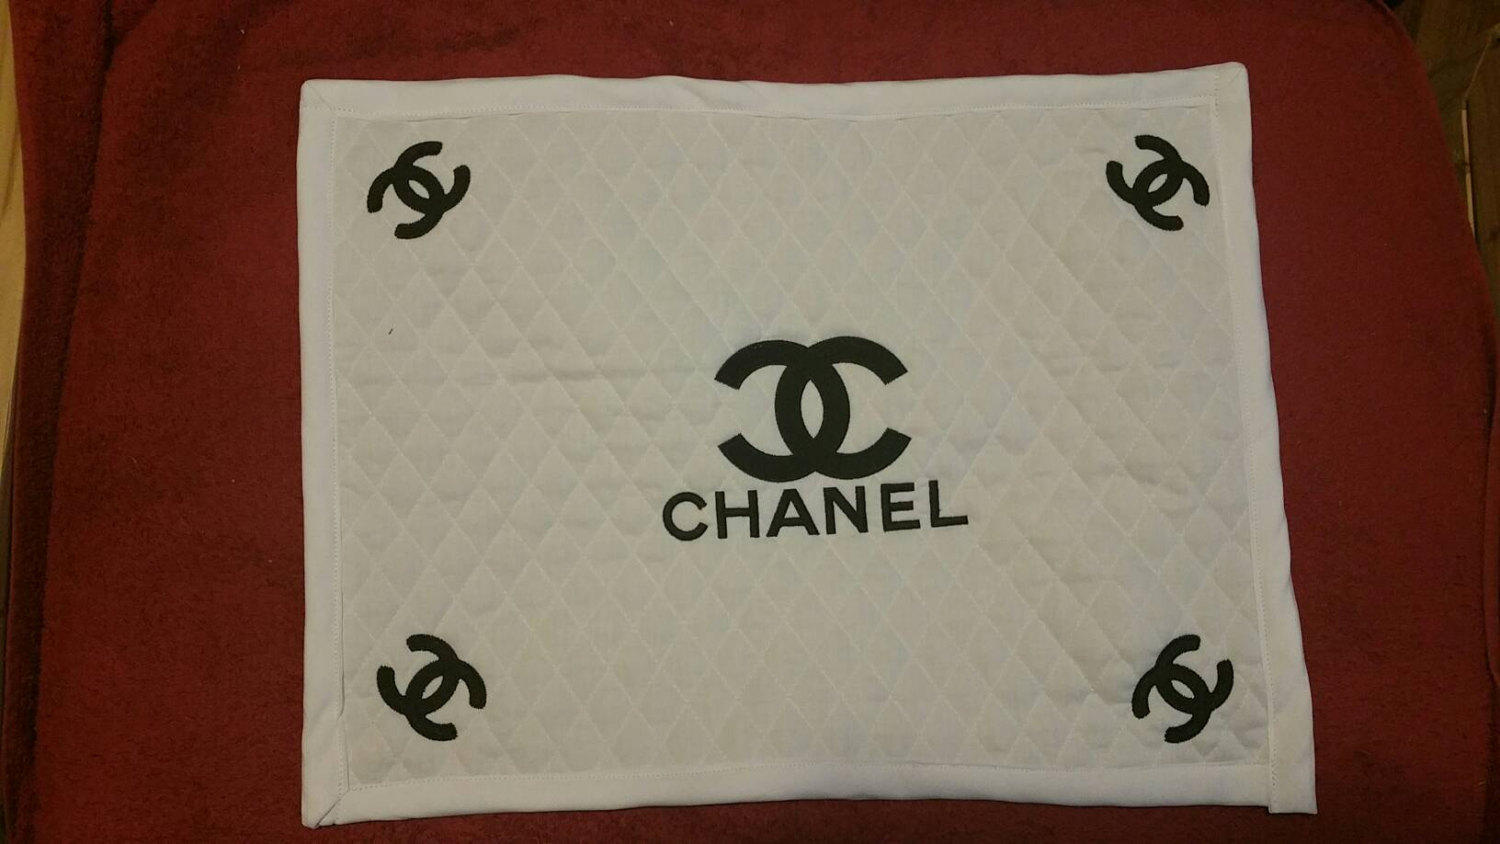 chanel_logo_embroidered6.jpg